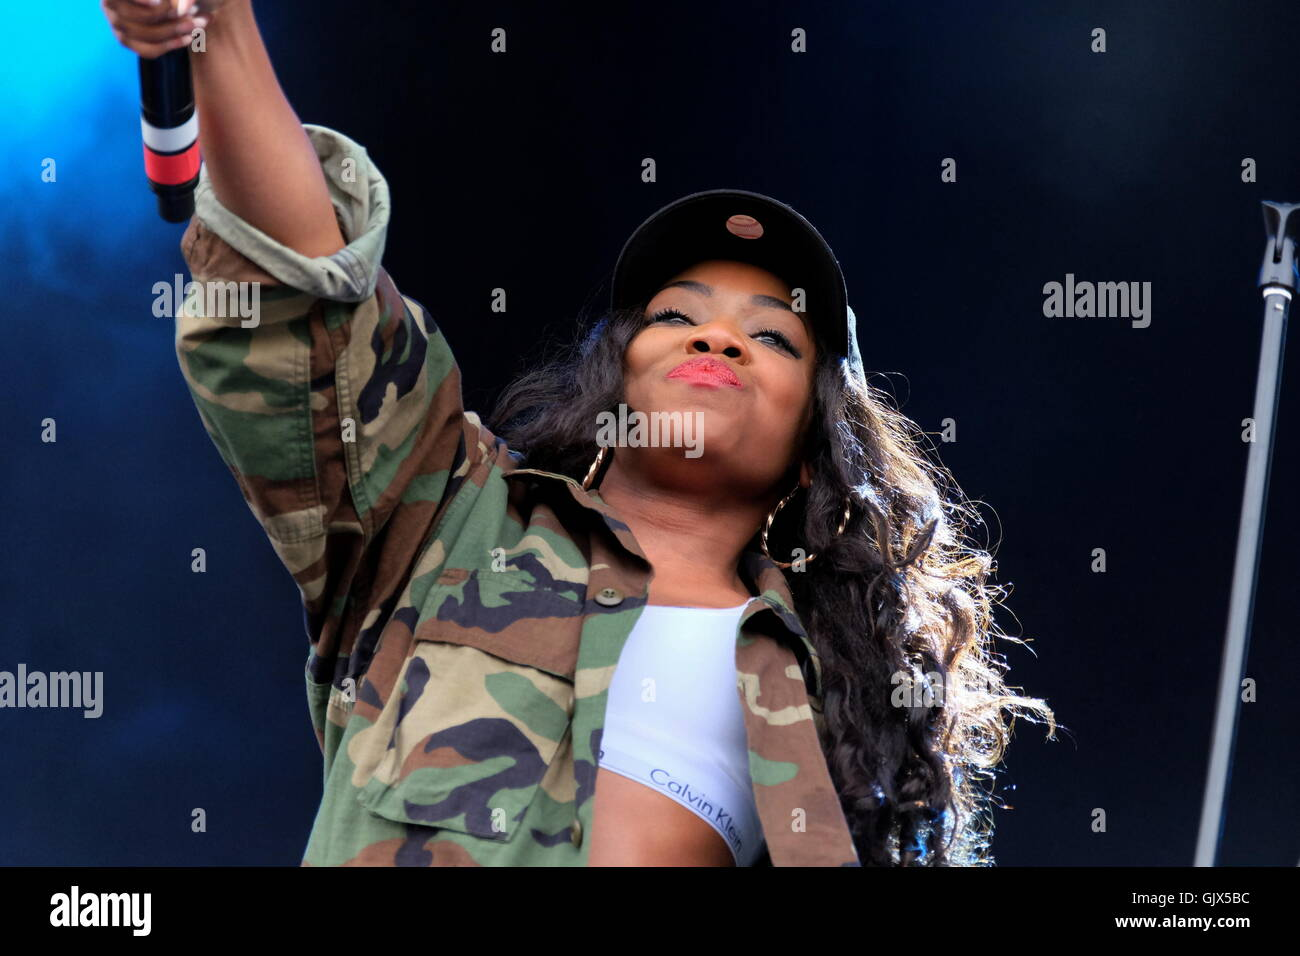 Common People Festival, Hampshire, 28th May 2016, Lady Leshurr performing live on stage - Stock Image